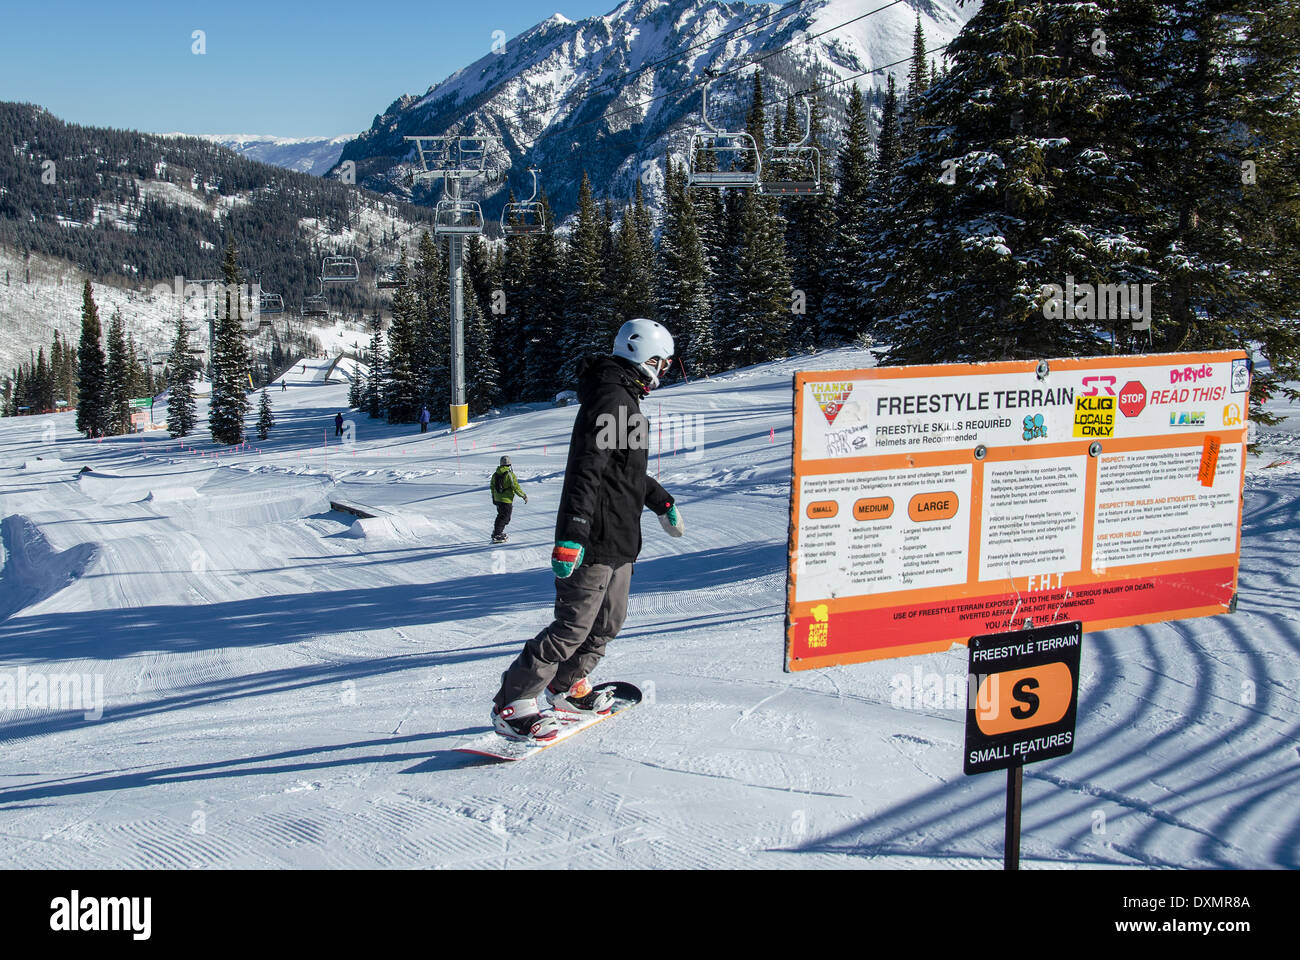 Snowboarder at Woodward Terrain Park Copper Mountain Colorado USA - Stock Image